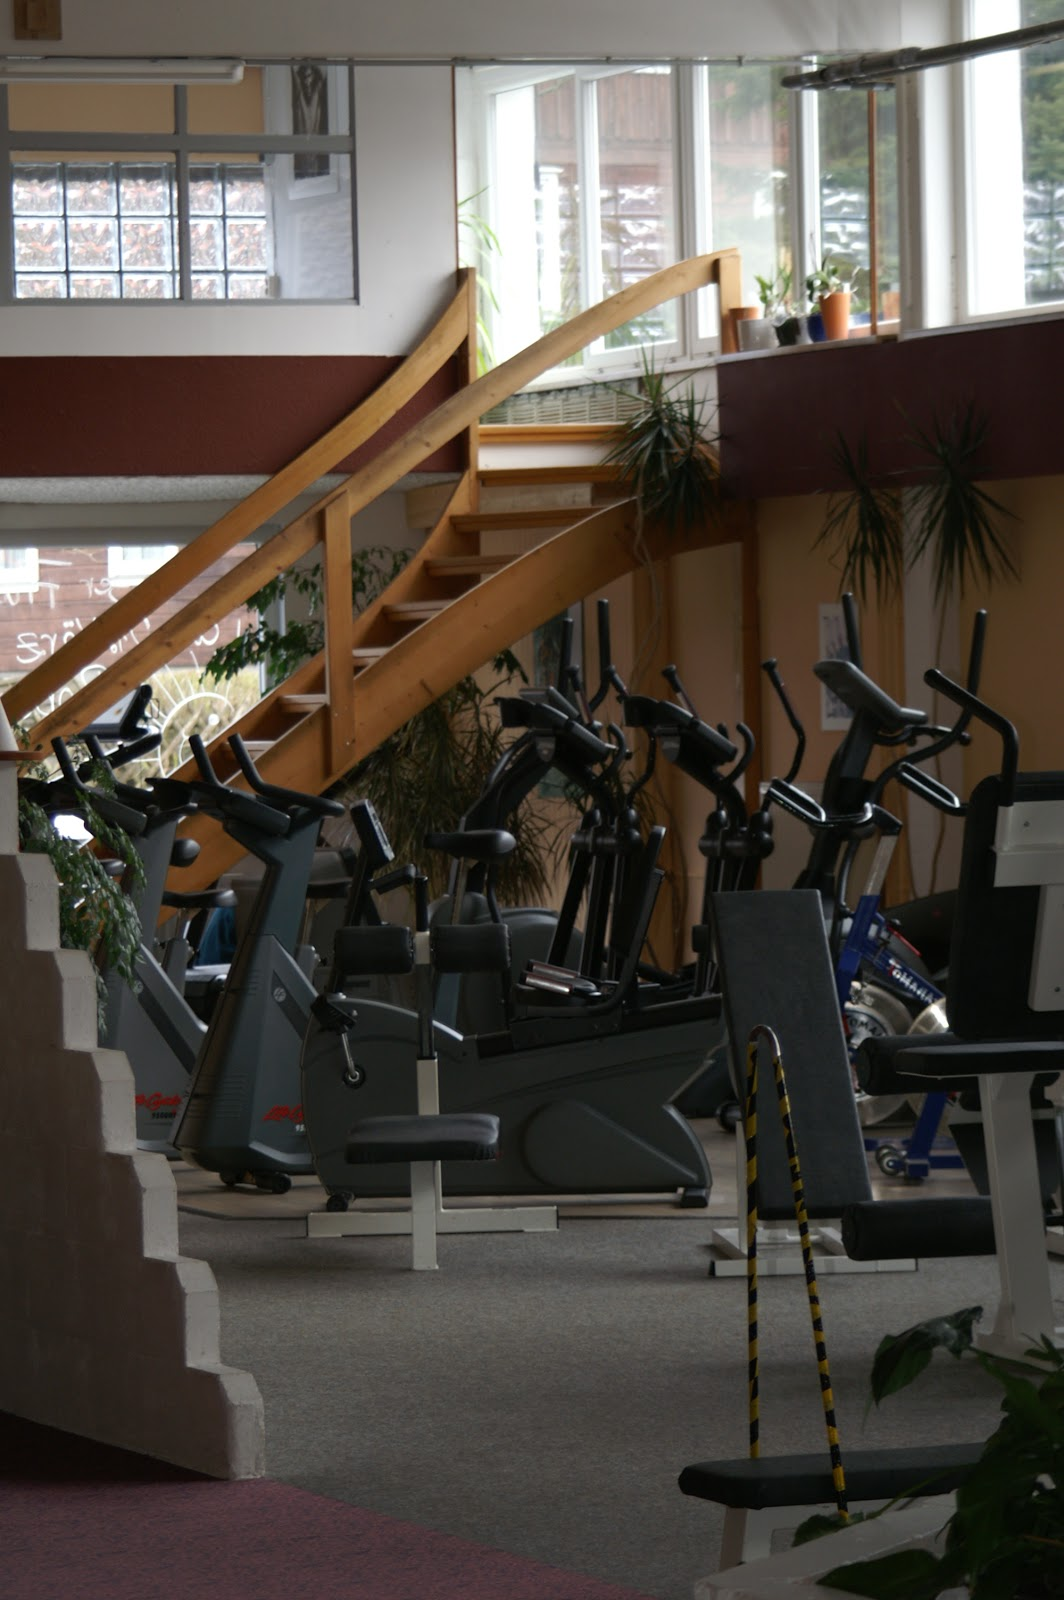 Fitnesscenter am Schlagbaum - photo